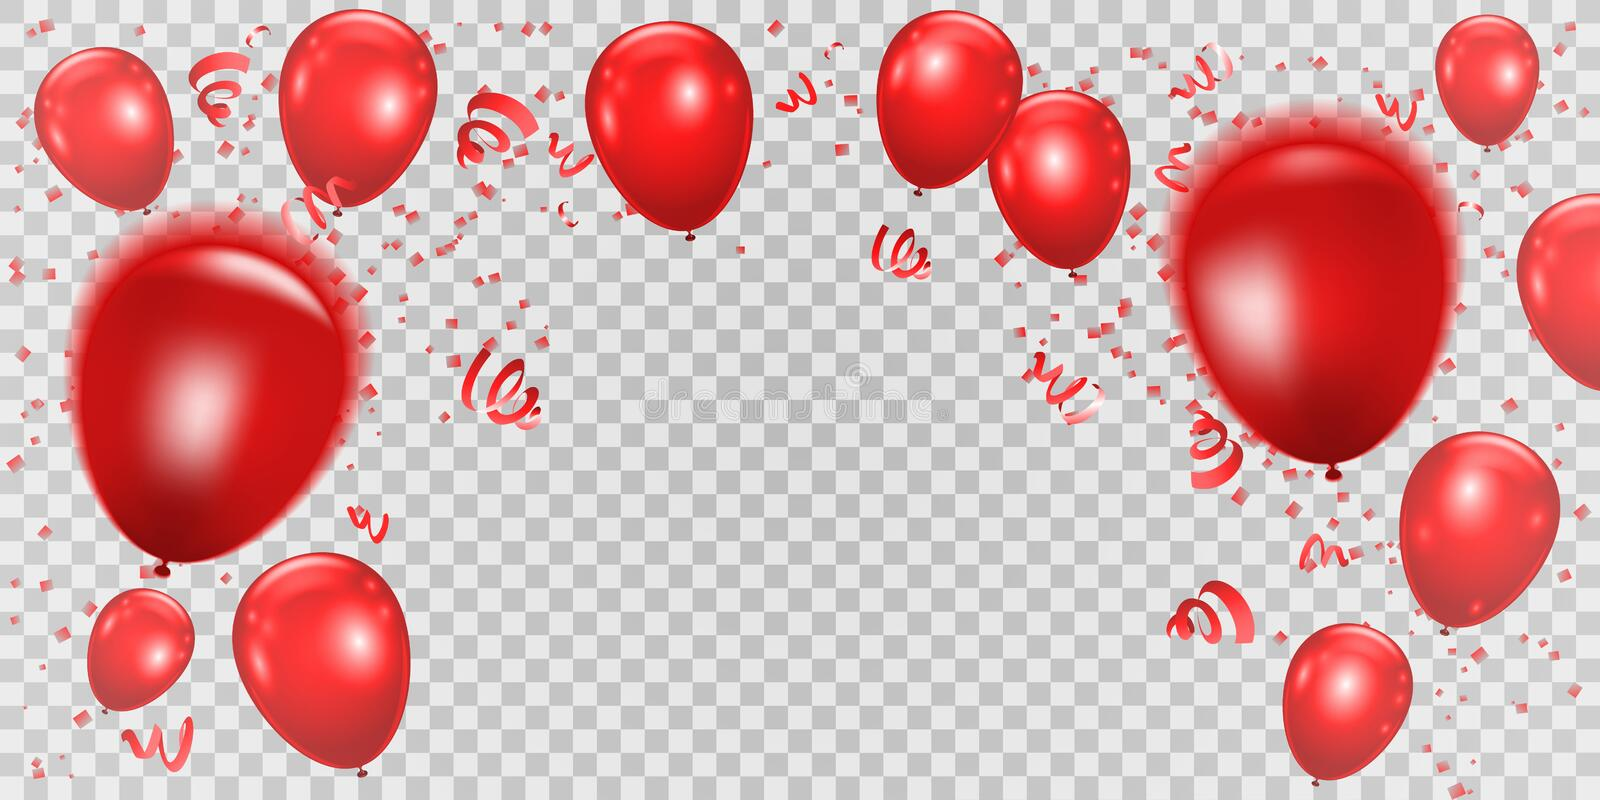 Celebration background wiht red balloons and ribbons. Vector ill royalty free illustration